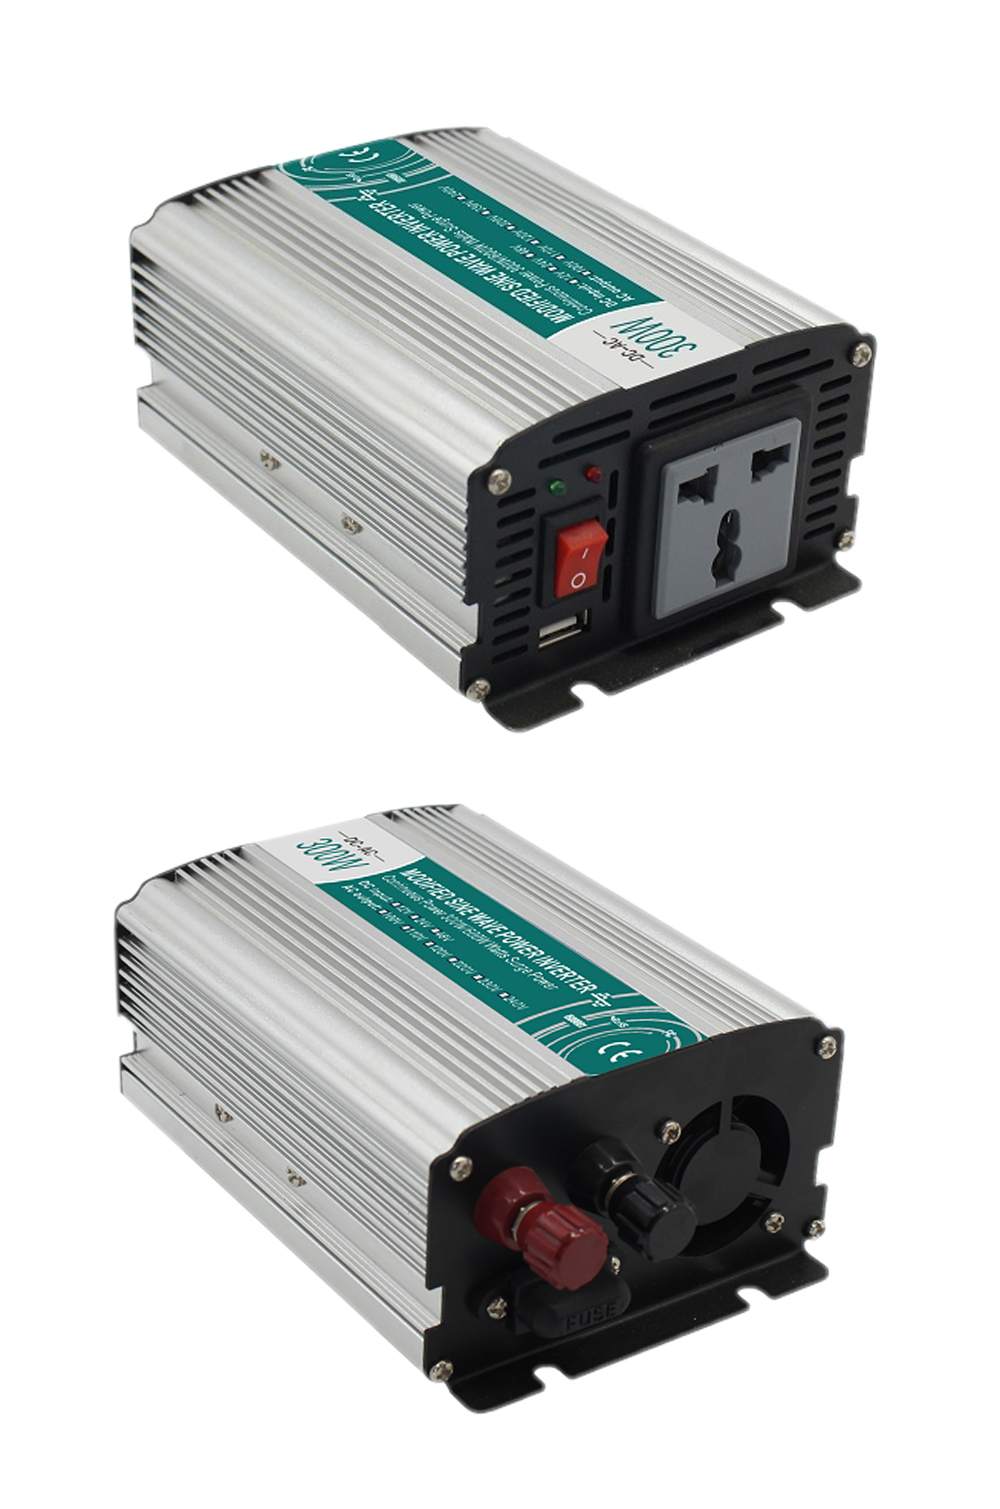 Erneuerbare Energie Friendly P500c 500w Car Power Inverter Dc12v To Ac220v Solar Inverter Modified Charger Mc